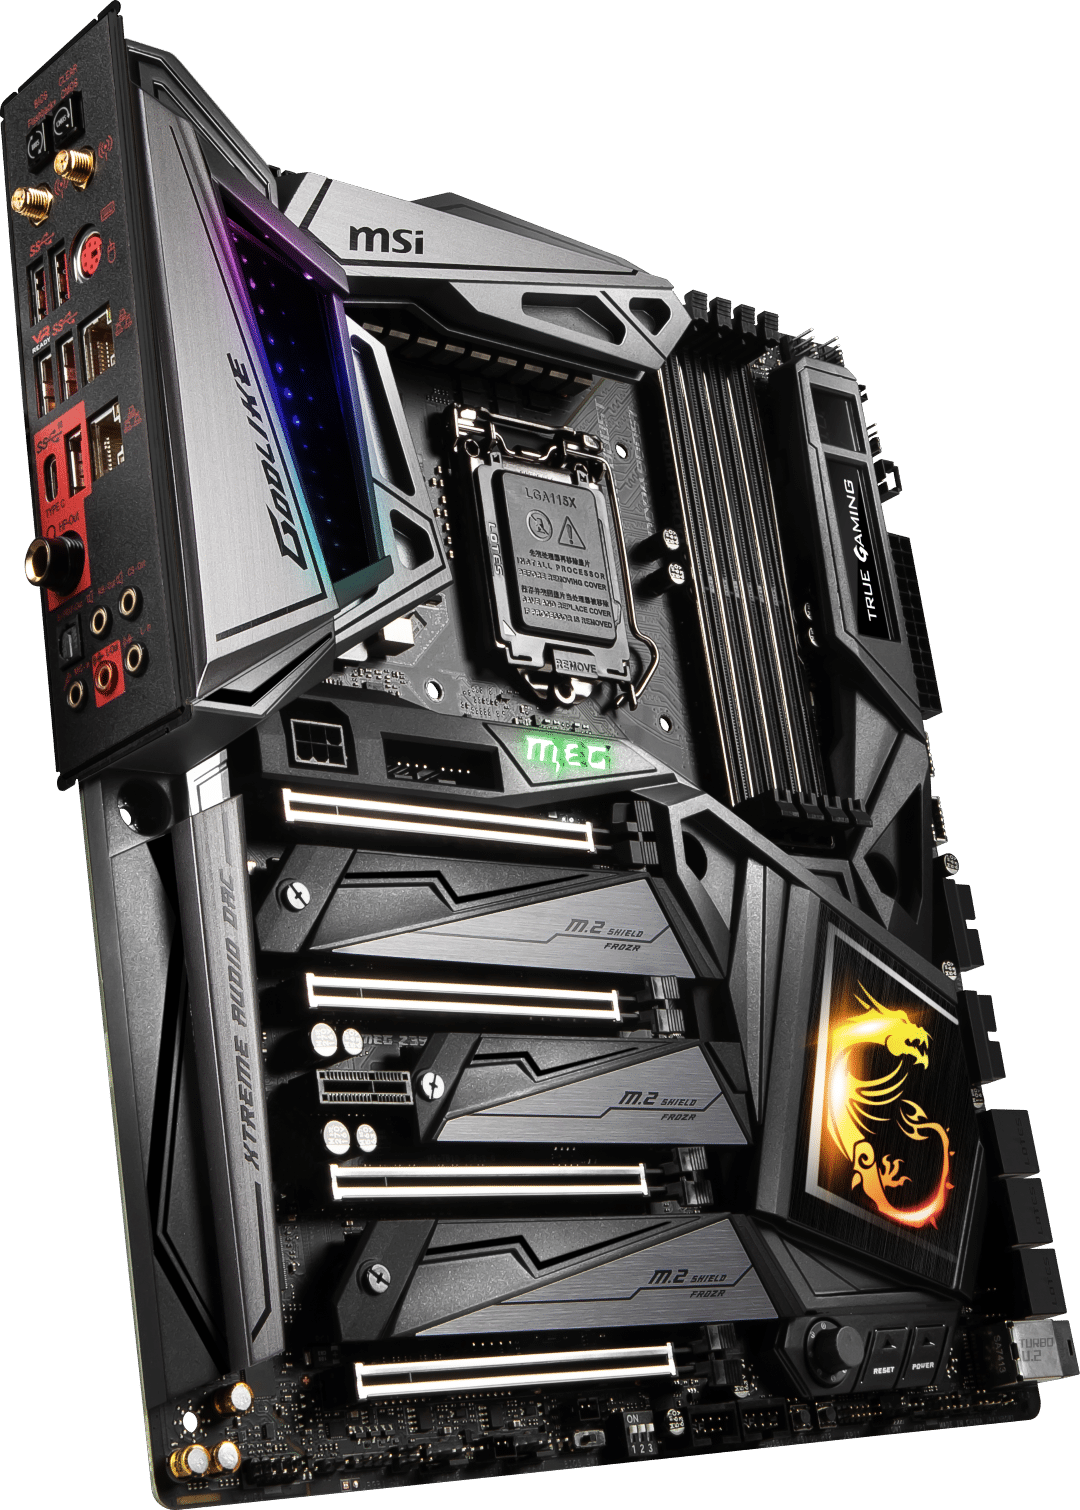 Computex News from MSI for Gamers and Developers